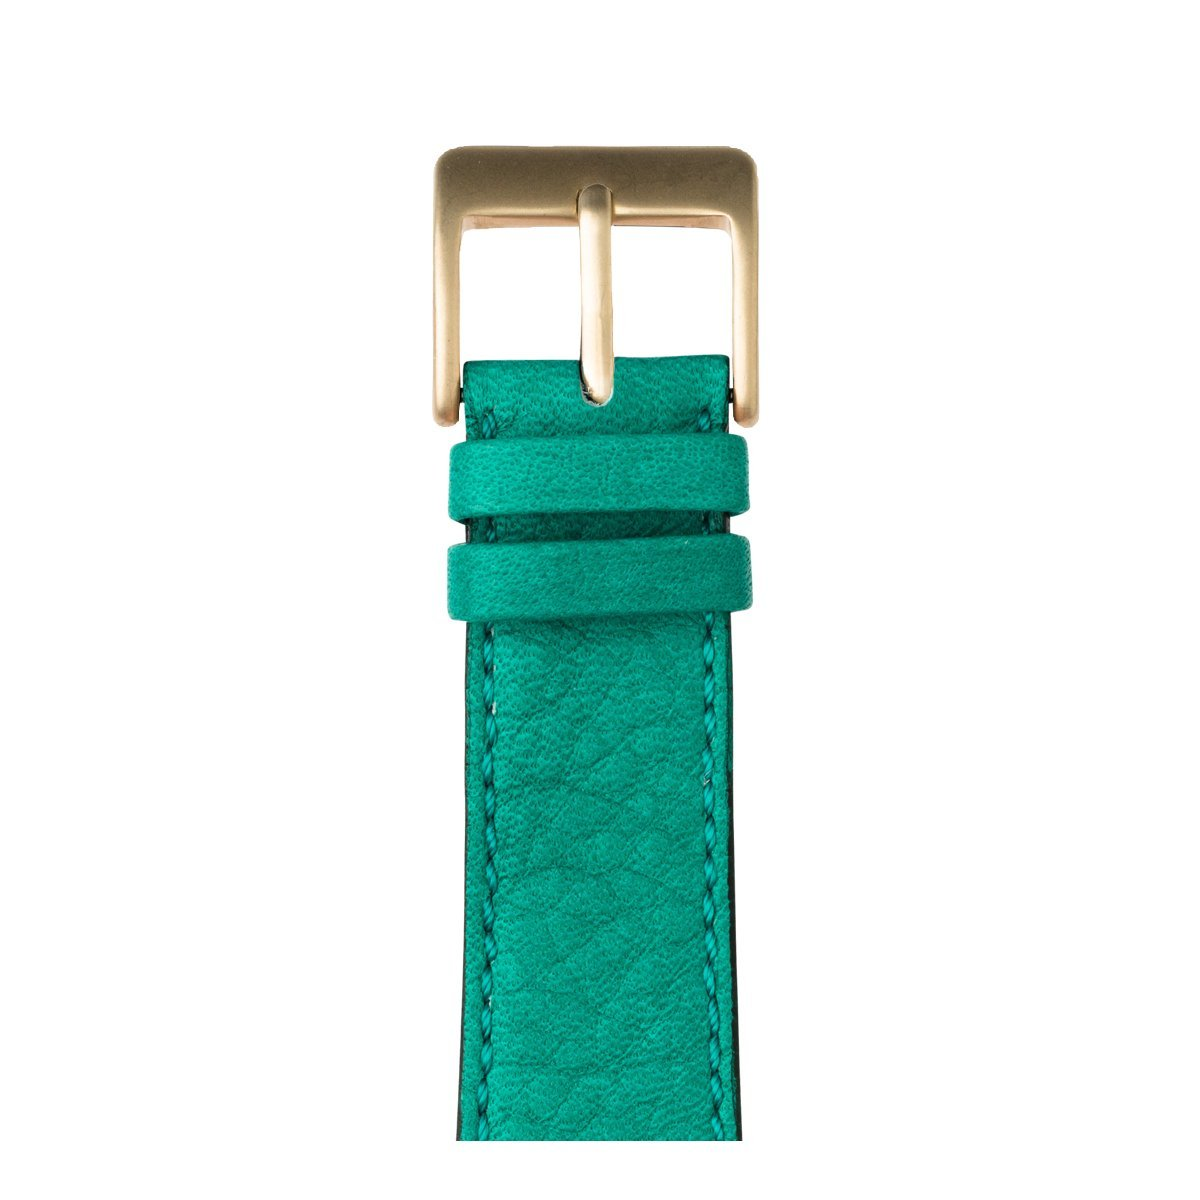 Roobaya | Premium Sauvage Leather Apple Watch Band in Turquoise | Includes Adapters matching the Color of the Apple Watch, Case Color:Gold Aluminum, Size:38 mm